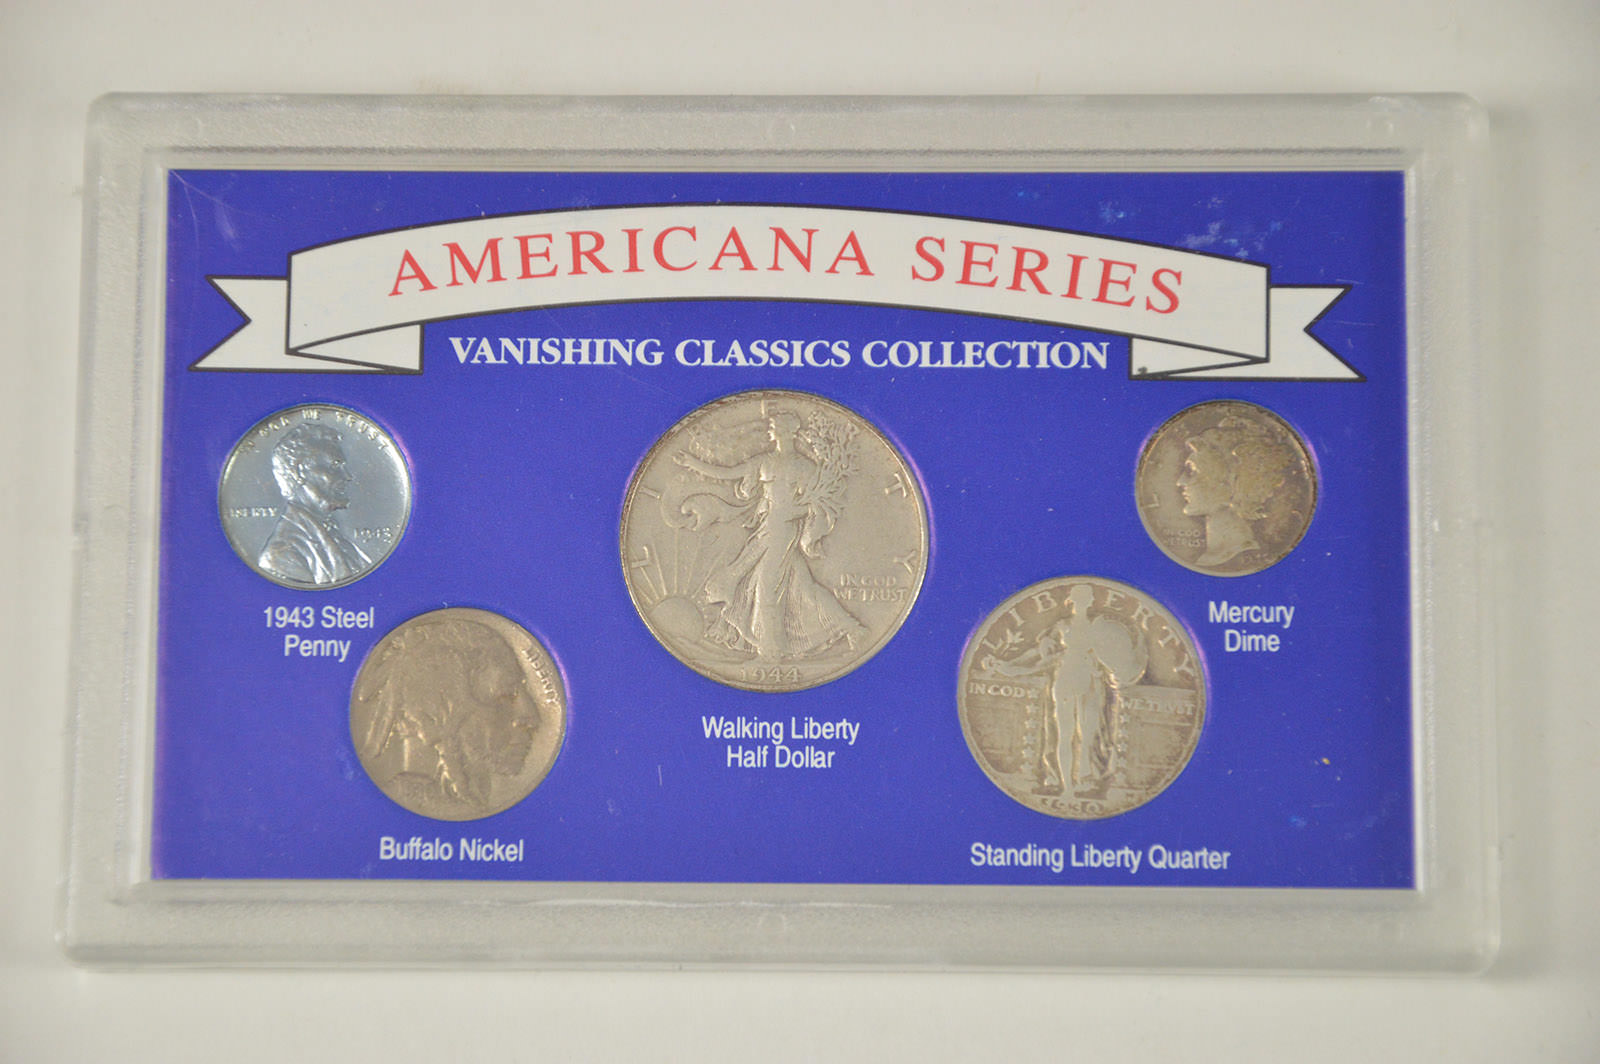 SILVER Coin Set Americana Series - Vanishing Classics